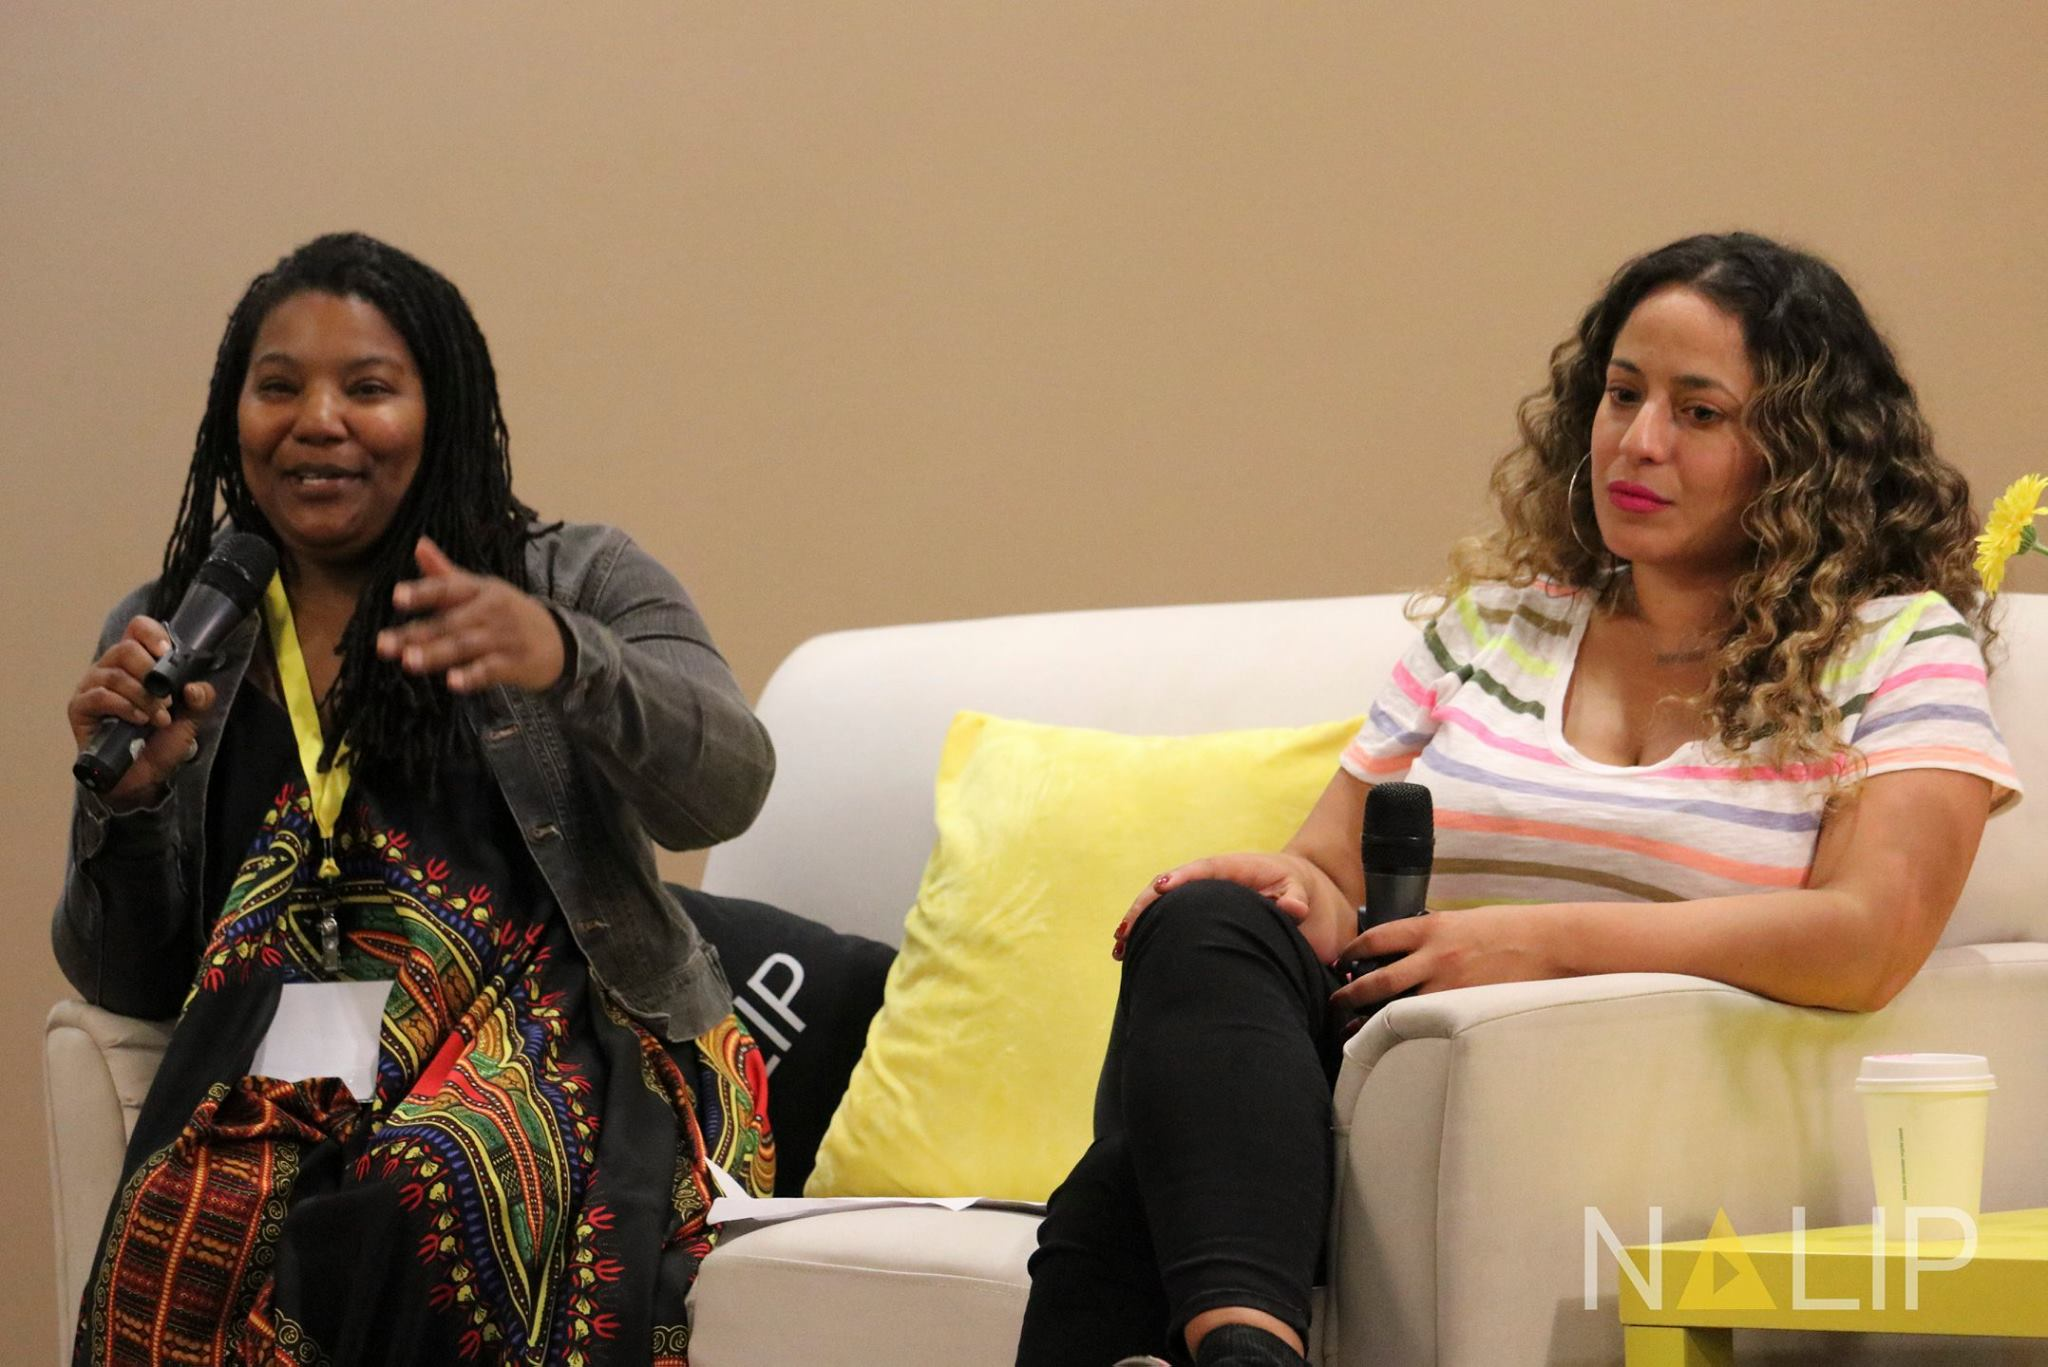 """Toni Bell, IDA Filmmaker Services Manager, moderating """"Pitching to Perfection"""" panel at NALIP. Photo by NALIP"""